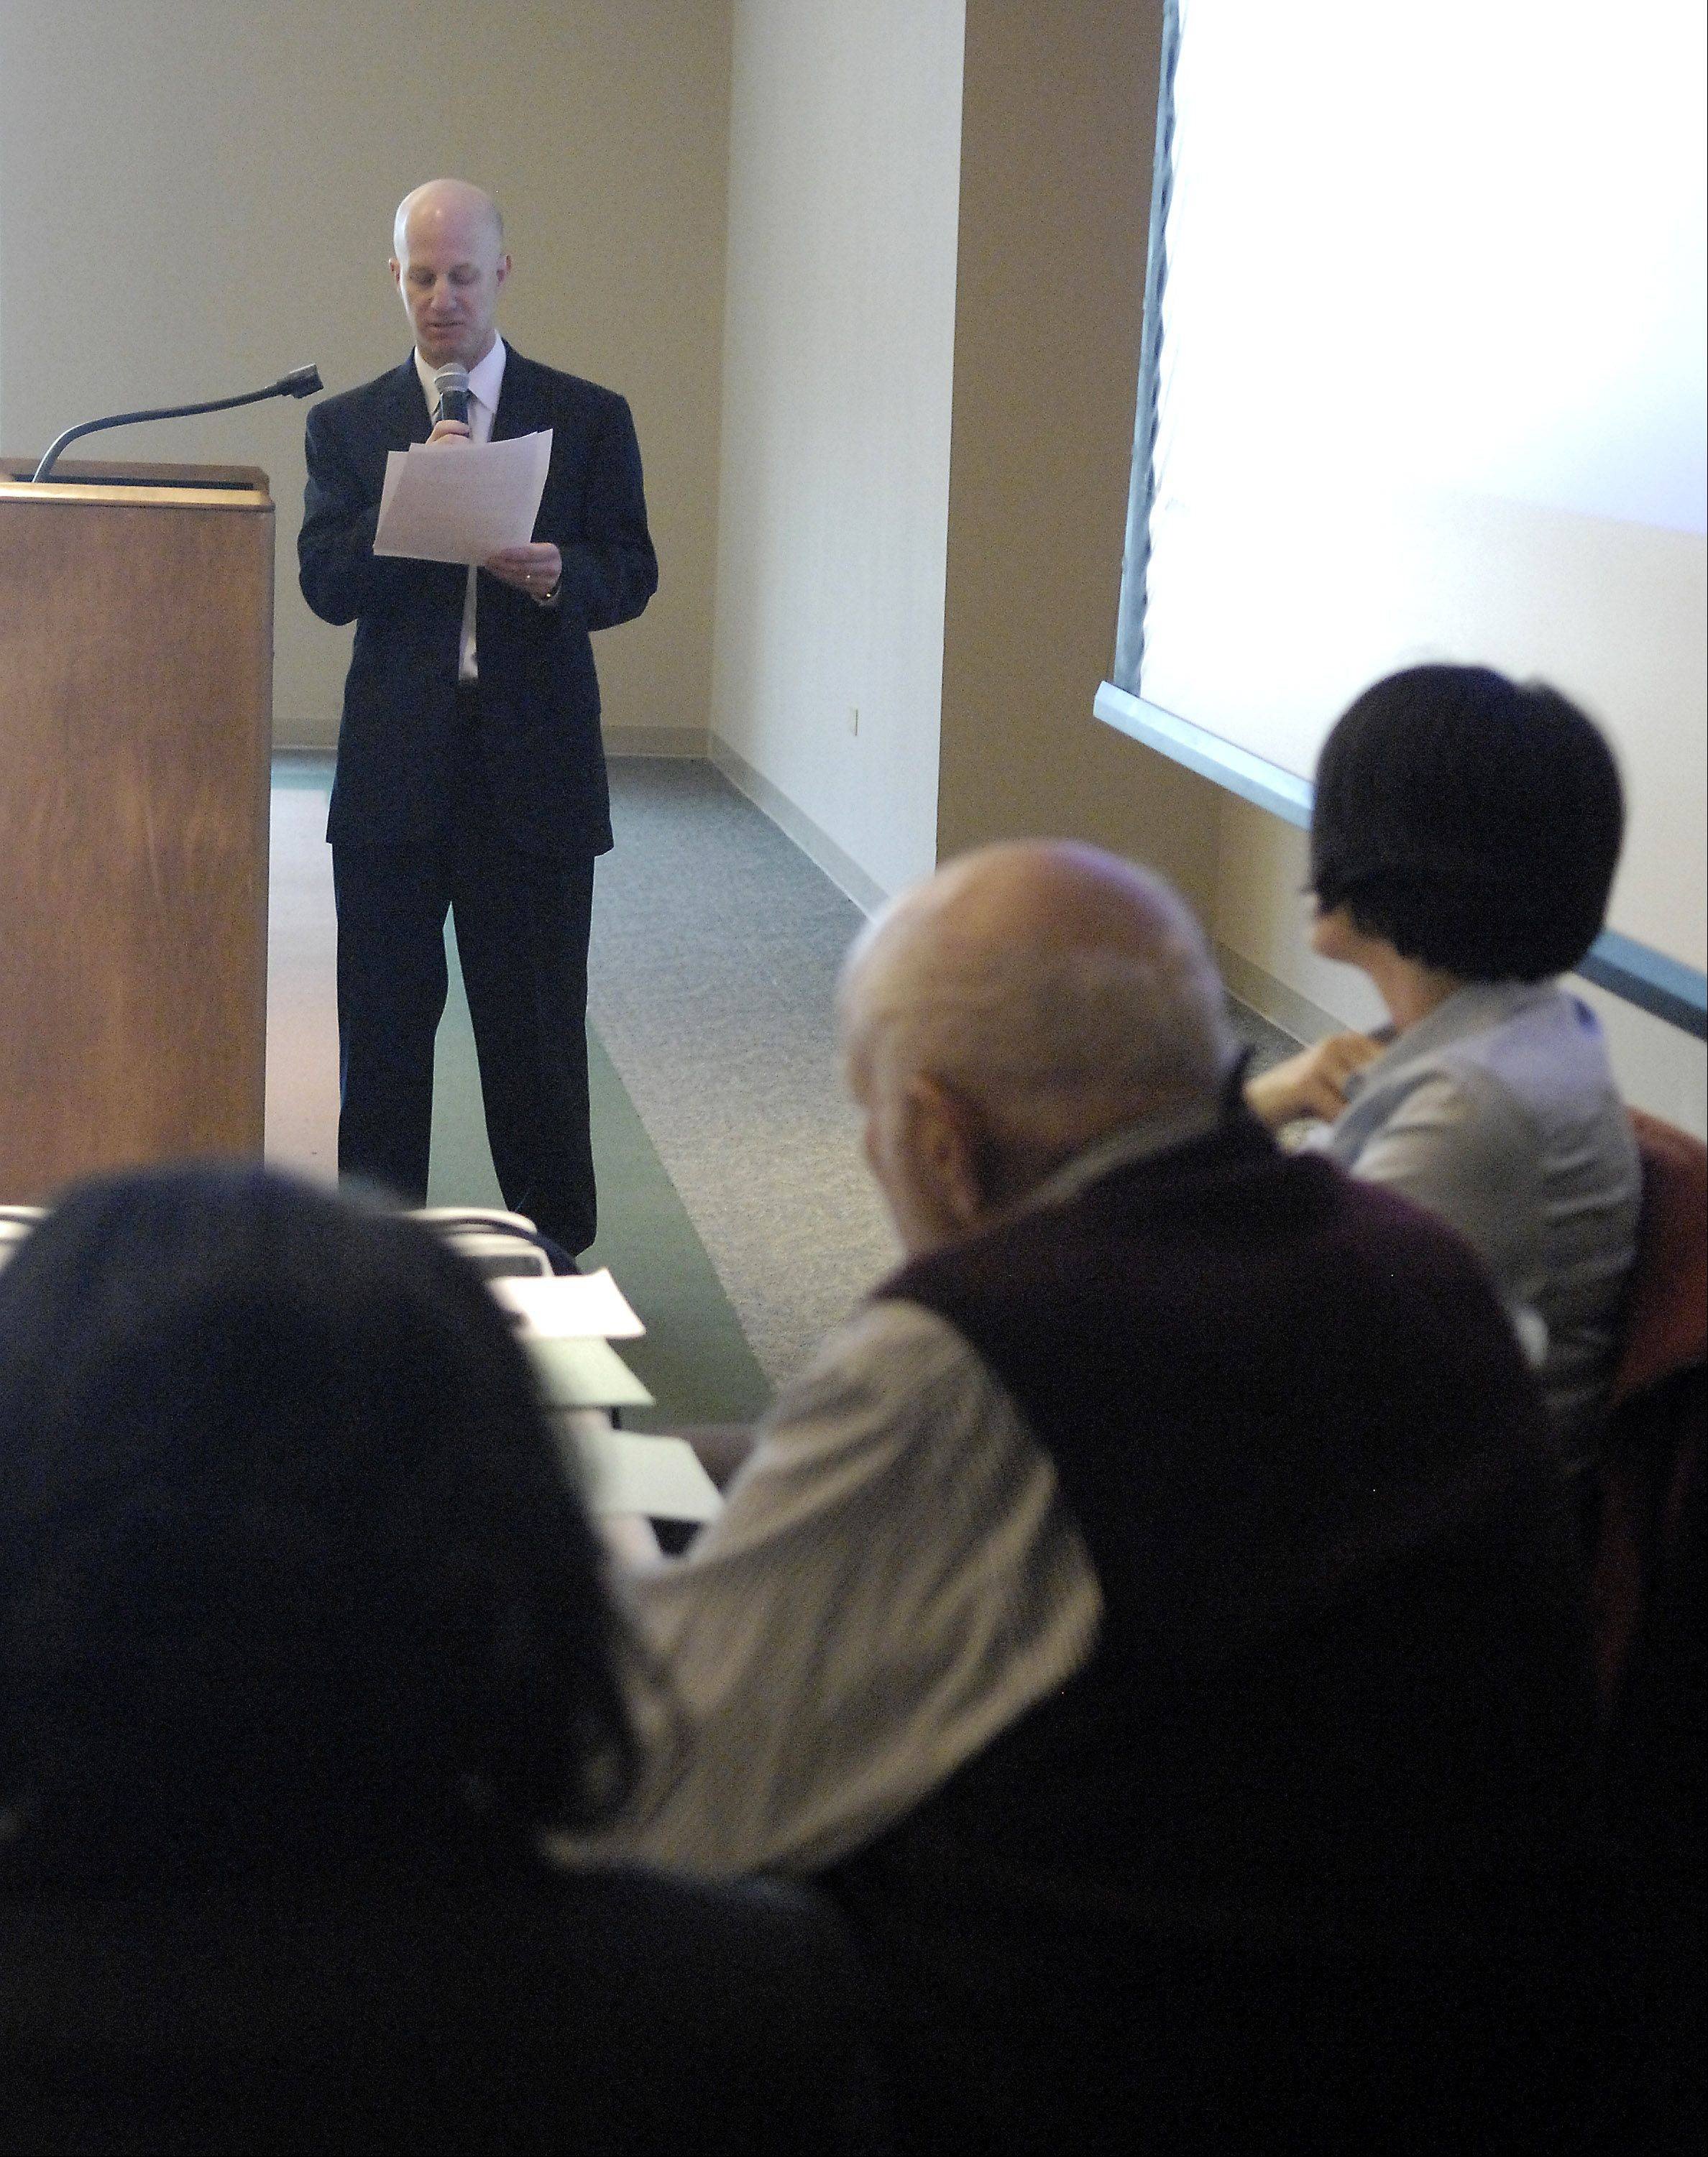 Scott Powder, senior vice president of strategic planning and growth at Advocate Health Care, addresses members of the Illinois Health Facilities and Services Review Board during a hearing Monday at the Centre of Elgin for the proposed Sherman Hospital-Advocate merger.